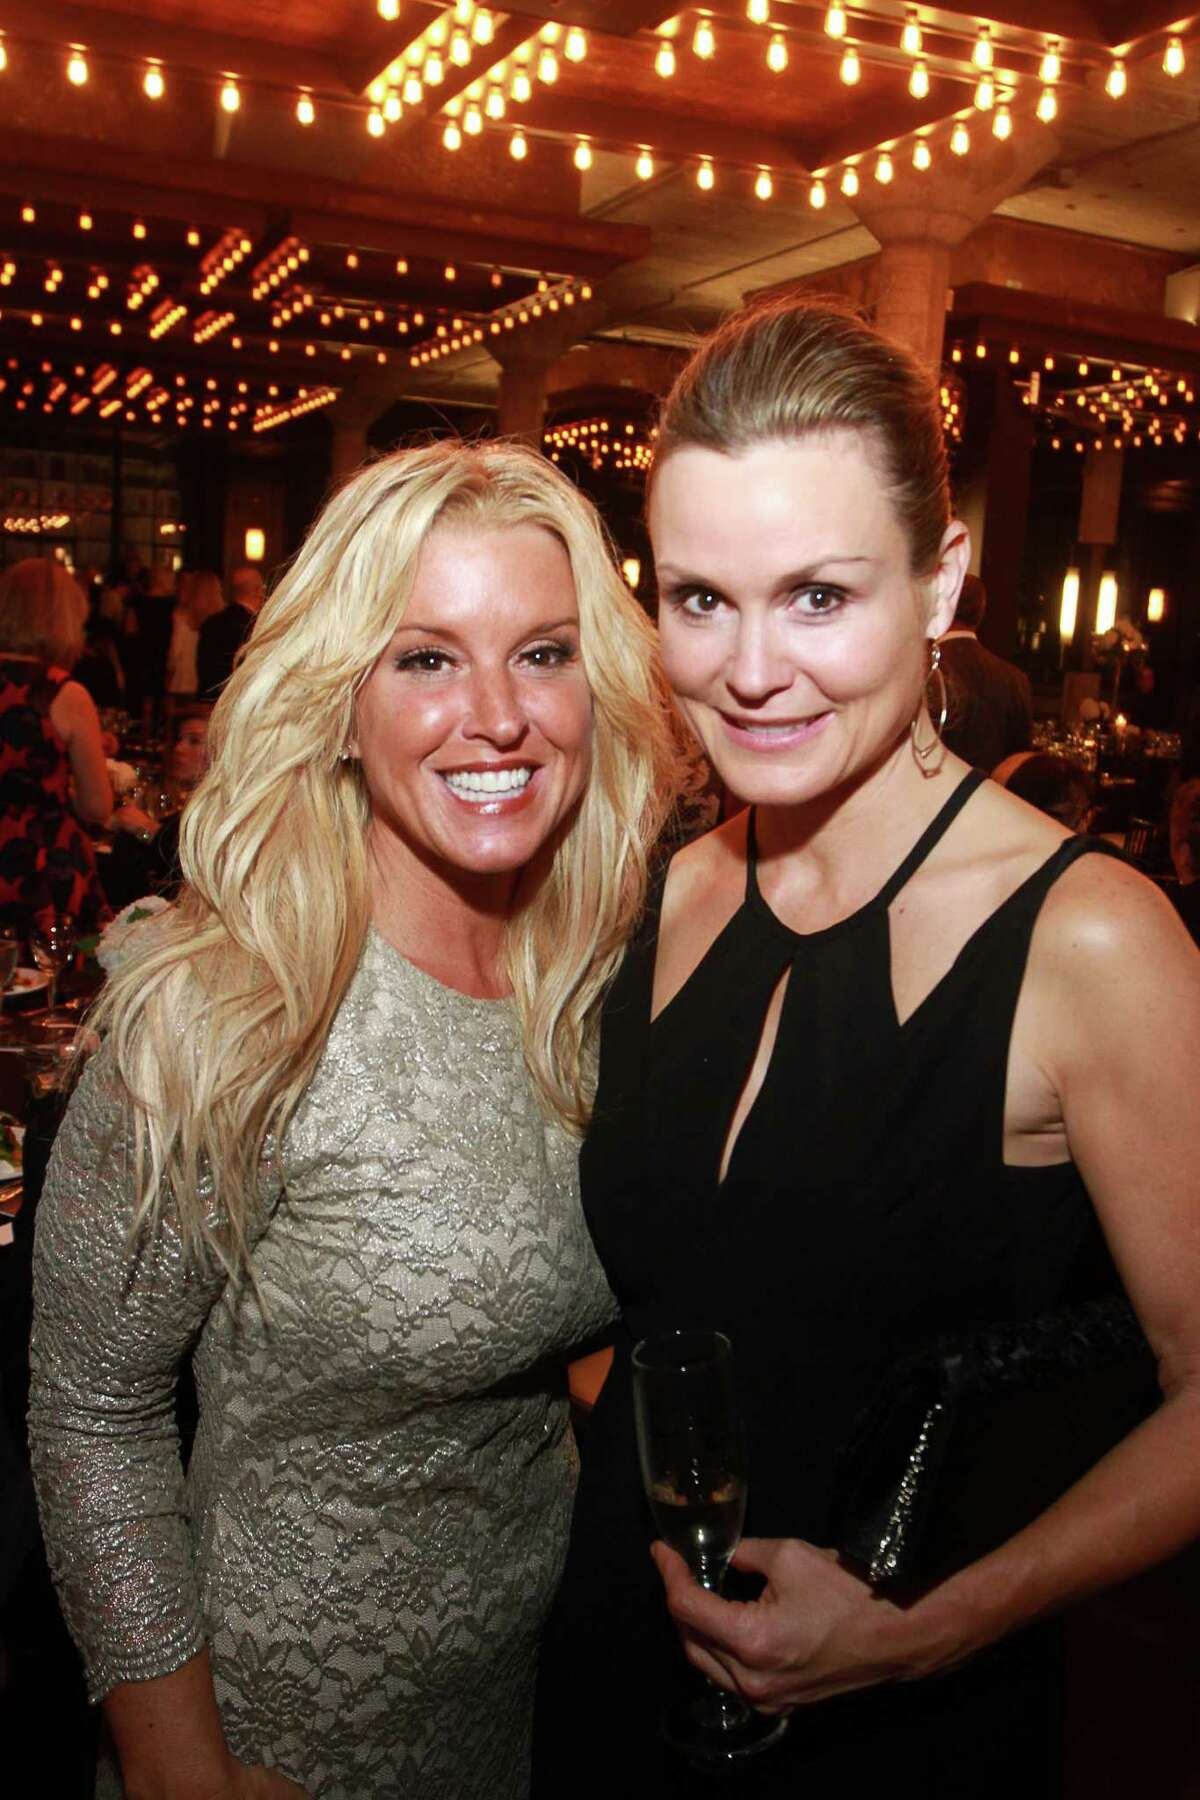 Stacie Breeze, left, and Amy Morris at the Fierce and Fabulous Houston PetSet Soiree at the Astorian. (For the Chronicle/Gary Fountain, September 11, 2015)